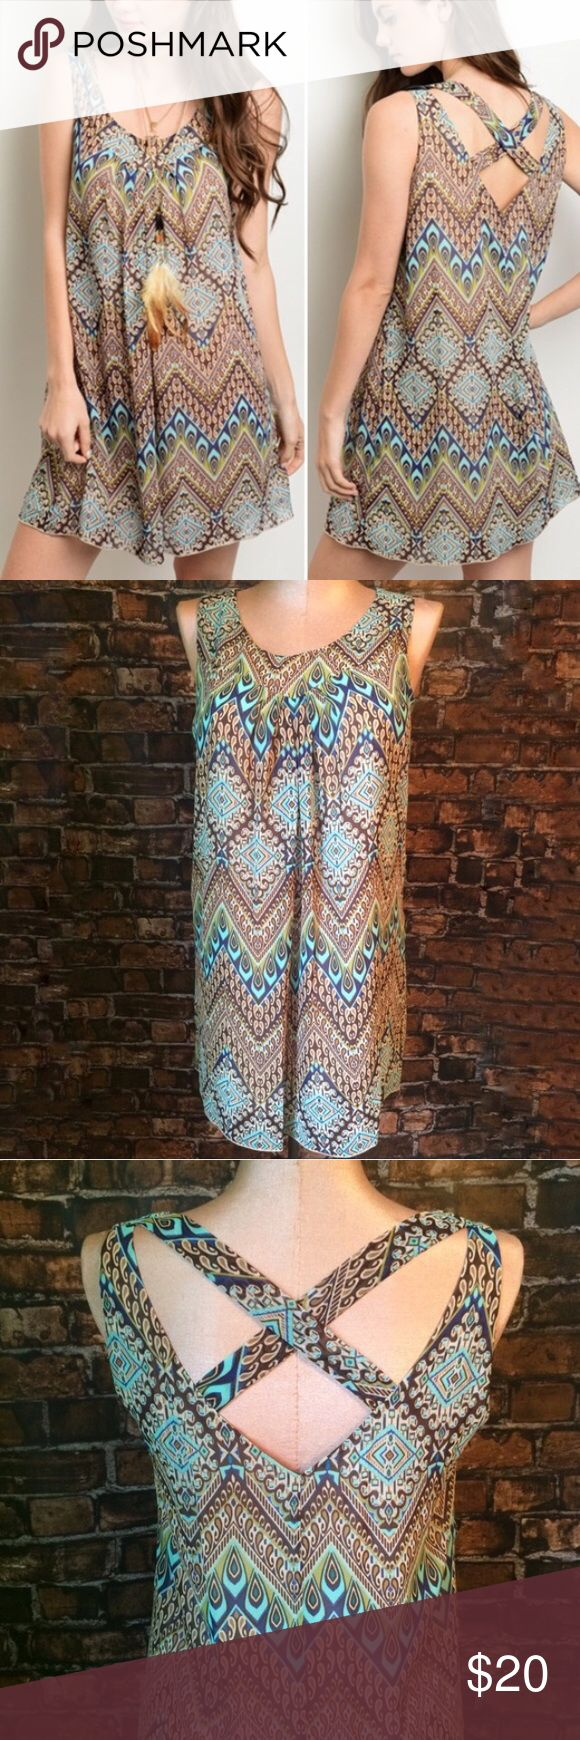 Boho swing dress - Petite sizing Sleeveless swing dress features a scooped neckline, tribal print all over in browns and blues with a relaxed fit. Criss cross back. Petite sizing. Lined. 100% polyester. Not interested in trades. Dresses